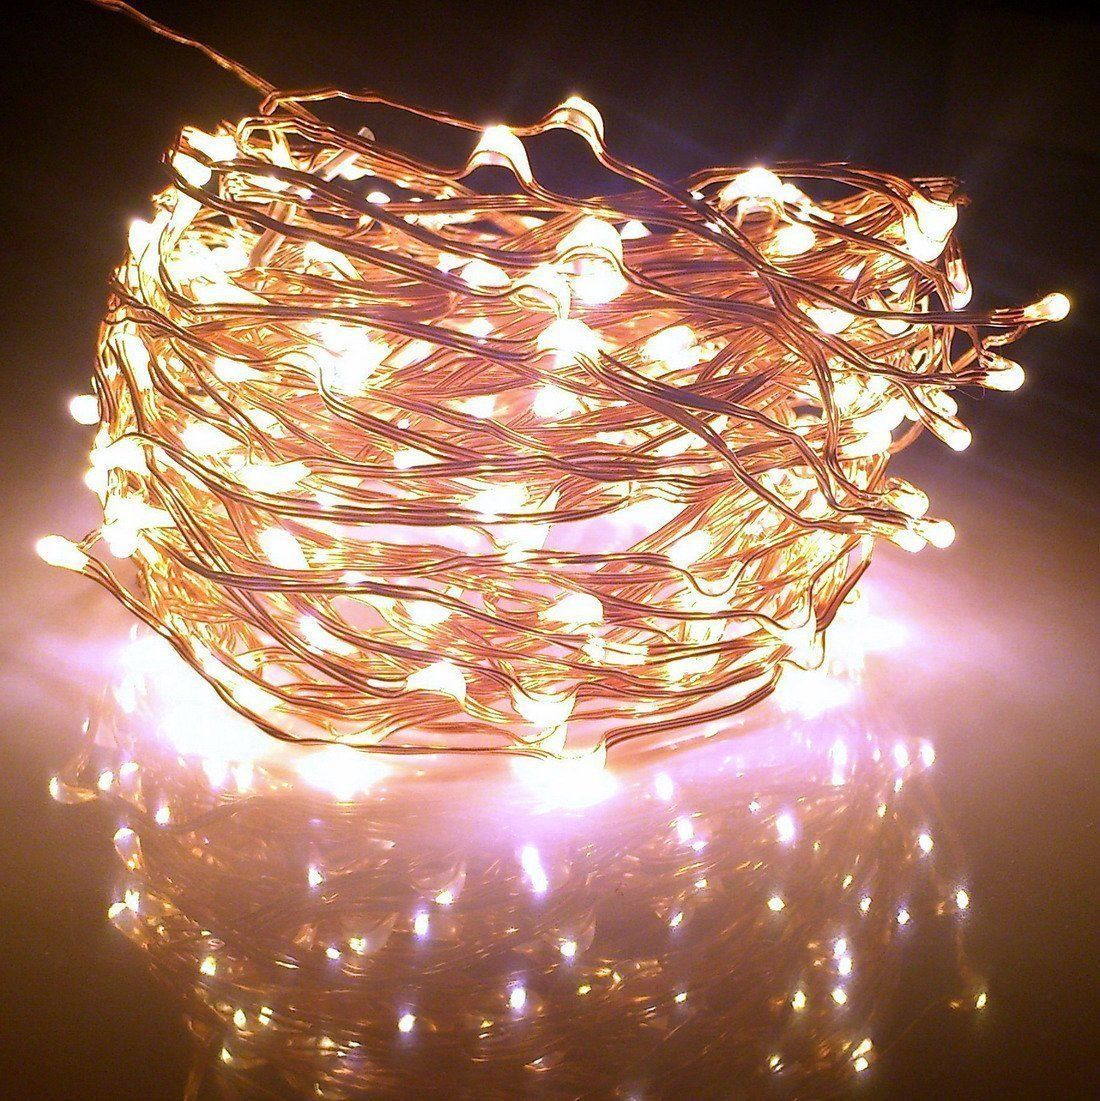 Outdoor String Lights Extra Long : Extra Long Starry Lights White String Indoor Outdoor Holiday 60 Warm 240 LED New - Lights